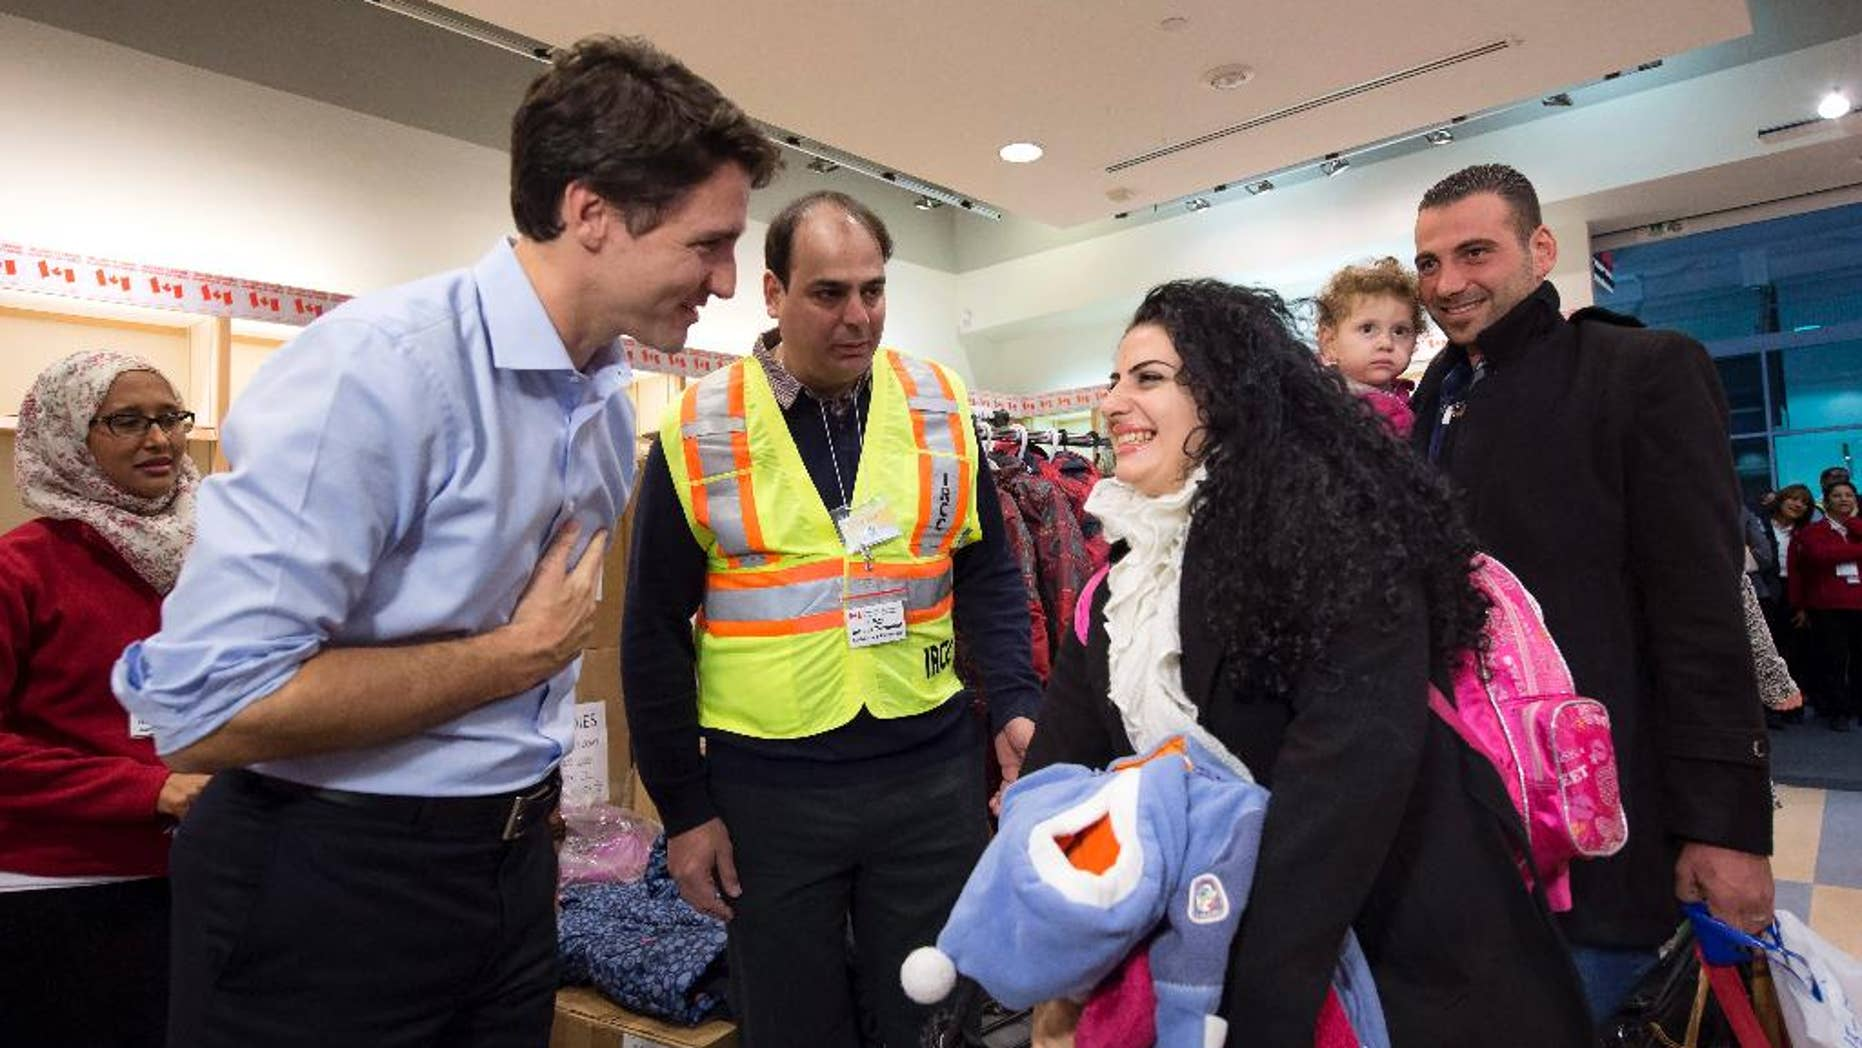 FILE - In this Dec. 11, 2015 file photo, Prime Minister Justin Trudeau, left, greets Georgina Zires, center, Madeleine Jamkossian, second right, and her father Kevork Jamkossian, refugees fleeing from Syria, as they arrive at Pearson International airport, in Toronto.